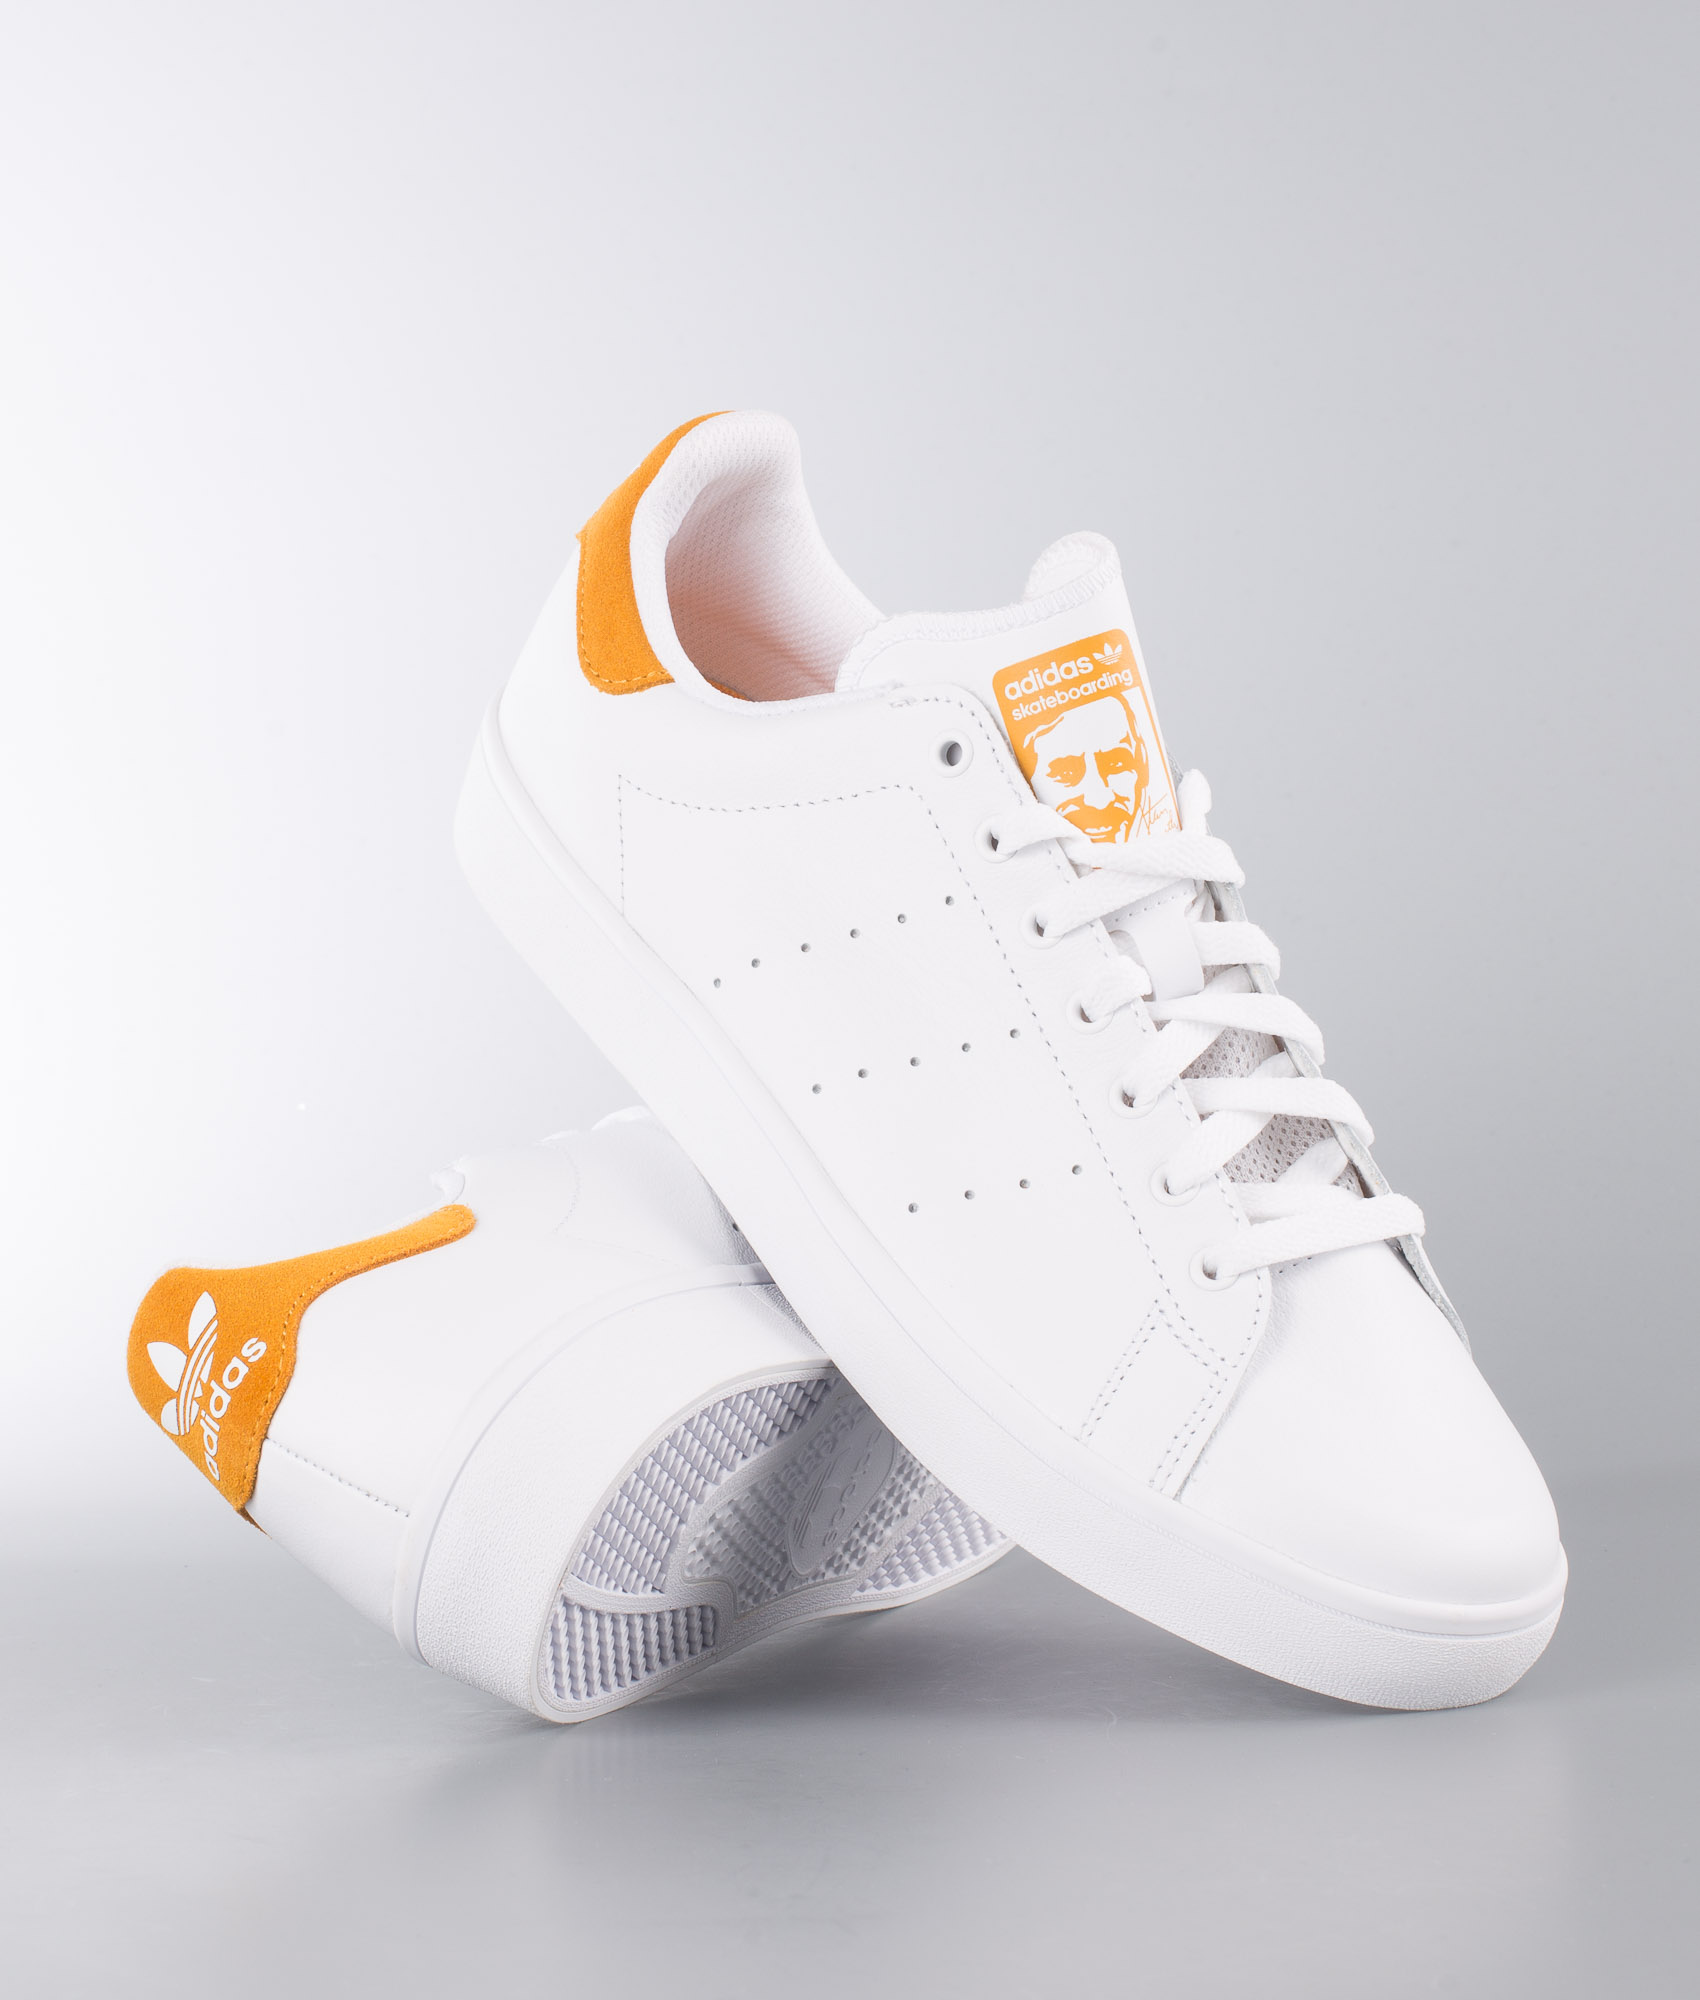 nouveau concept 85c58 a4edb Adidas Skateboarding Stan Smith Vulc Shoes Ftwr White/Ftwr White/Tactical  Yellow